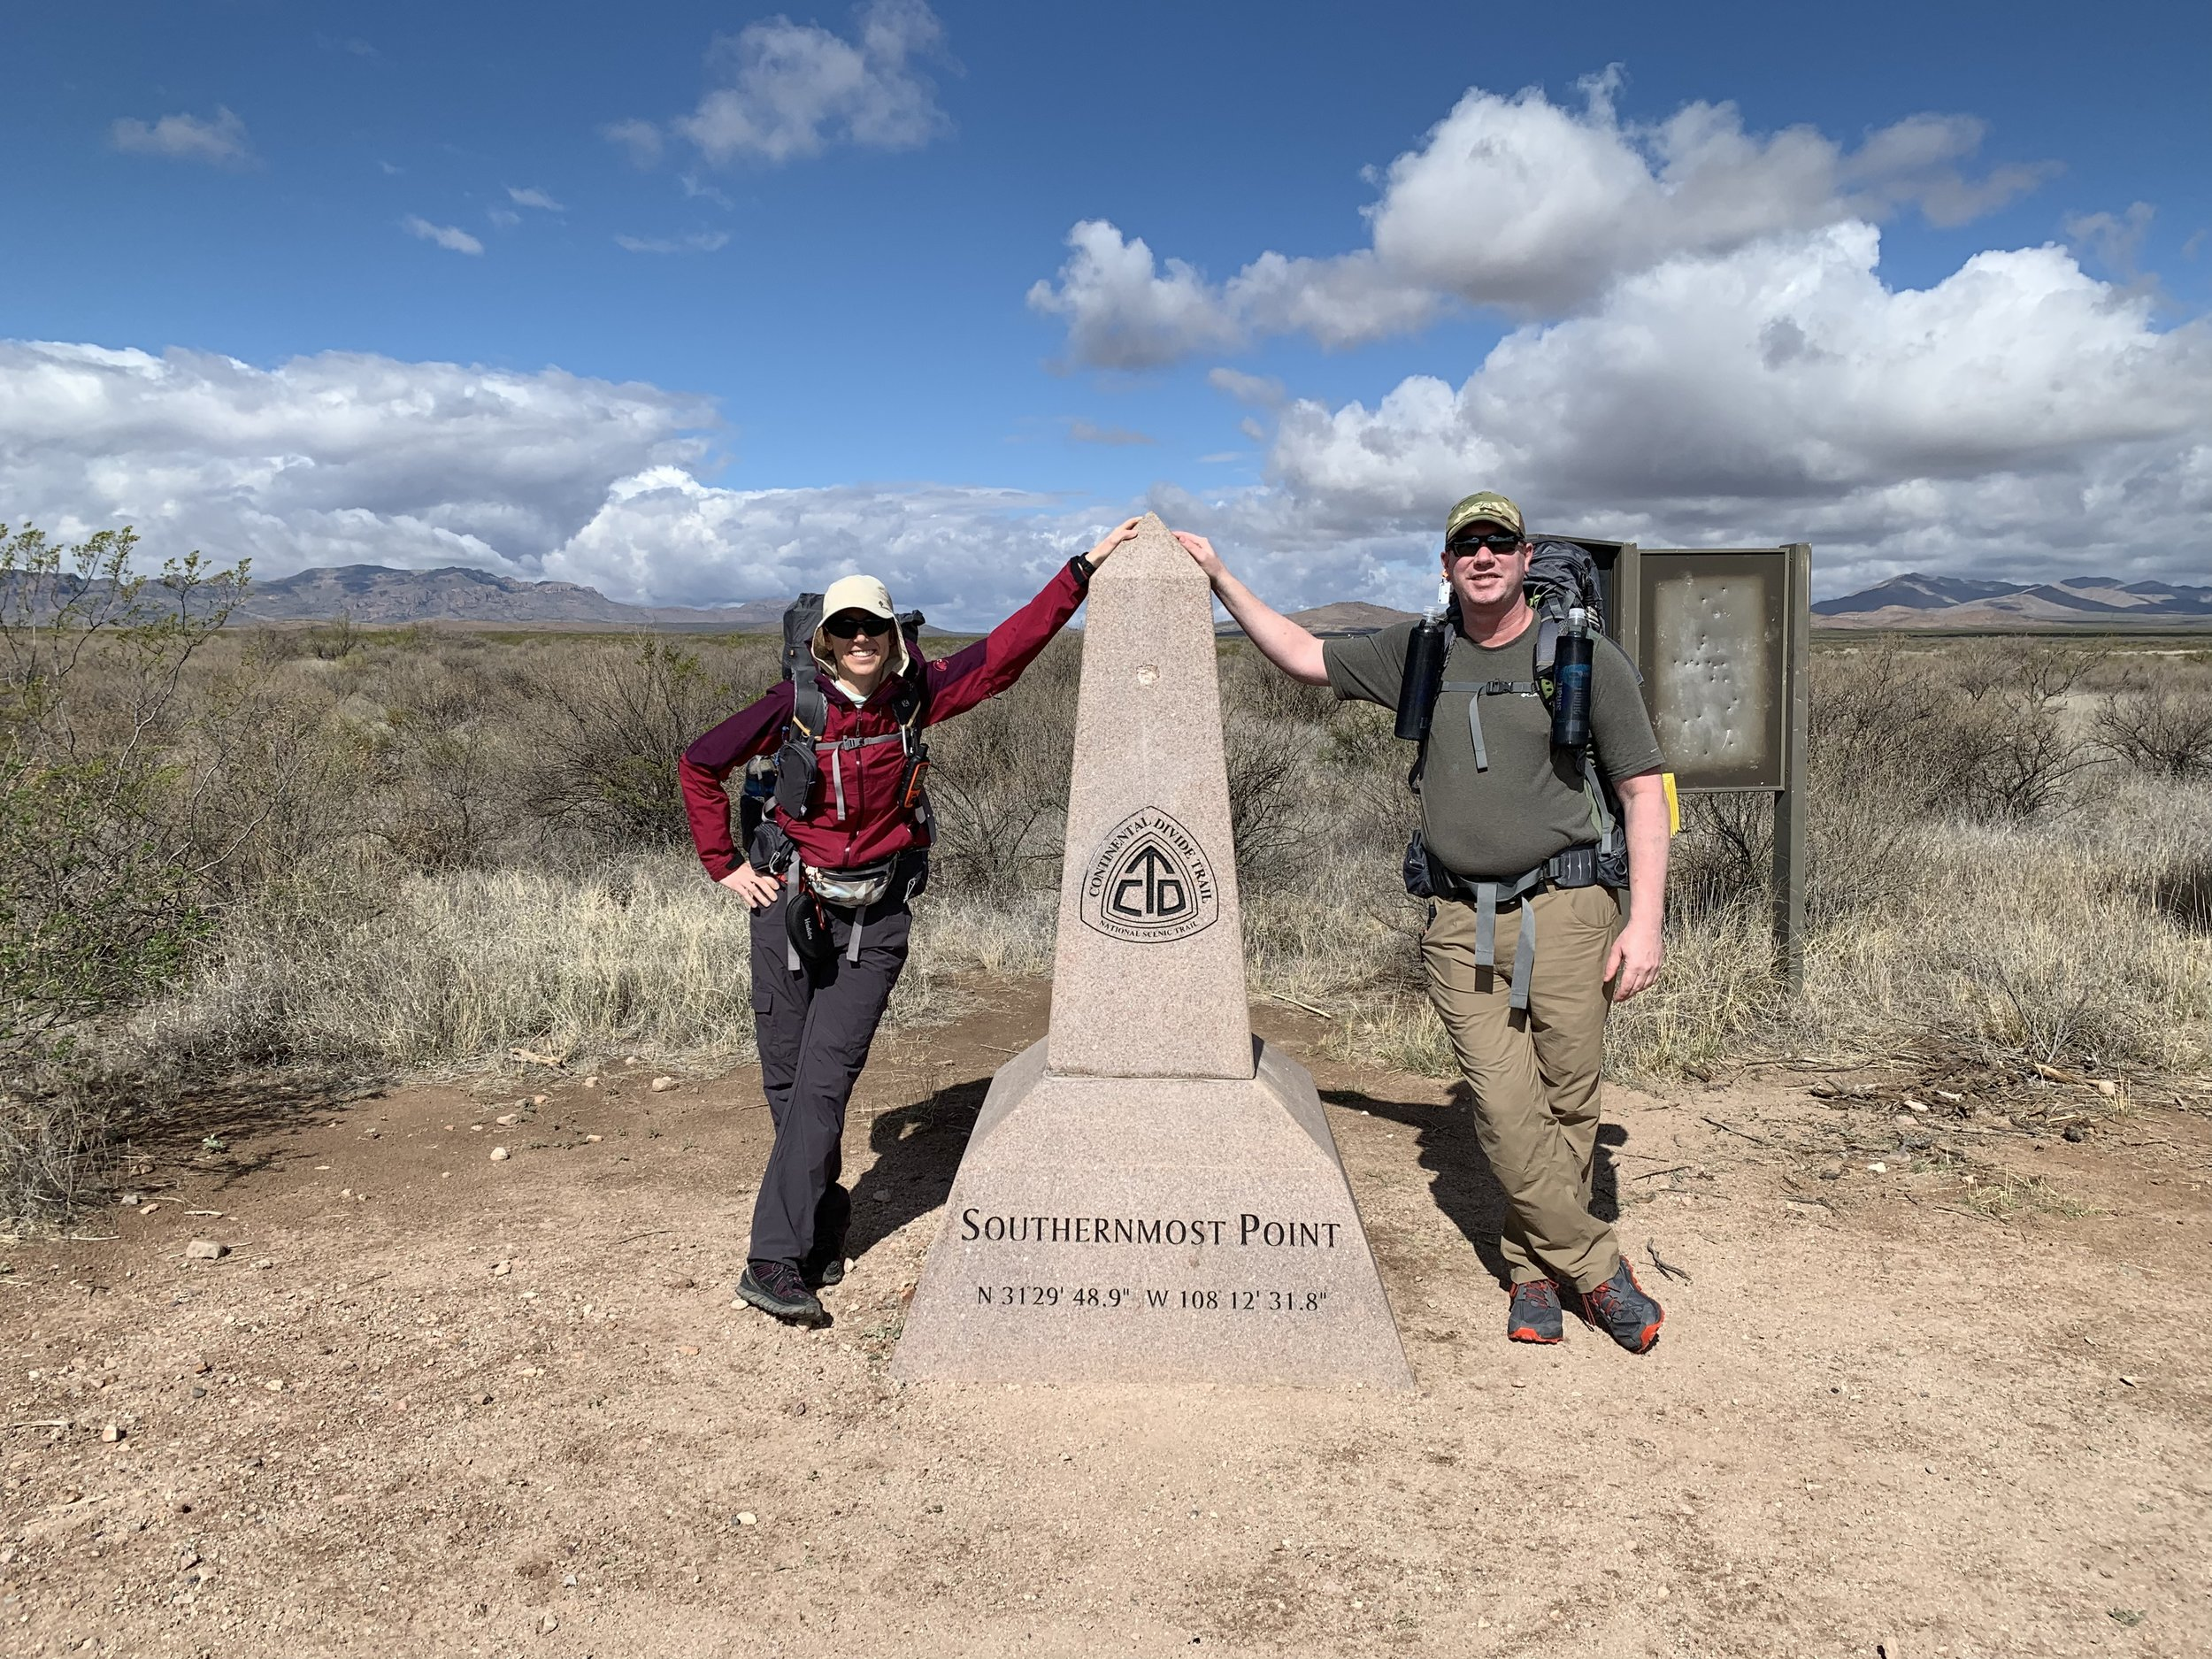 Update 4/17/19 - On April 15th, I flew out to Tucson, AZ, picked up some last minute supplies at the local REI with the help of my cousin, Inian, and Took a bus to Lordsburg, NM. From there, in the early morning of the 17th, I took a shuttle to the Southern Terminus of the Continental Divide Trail and will attempt to hike 2,716 miles northbound to the border of Glacier National Park and Canada's Waterton Lakes.